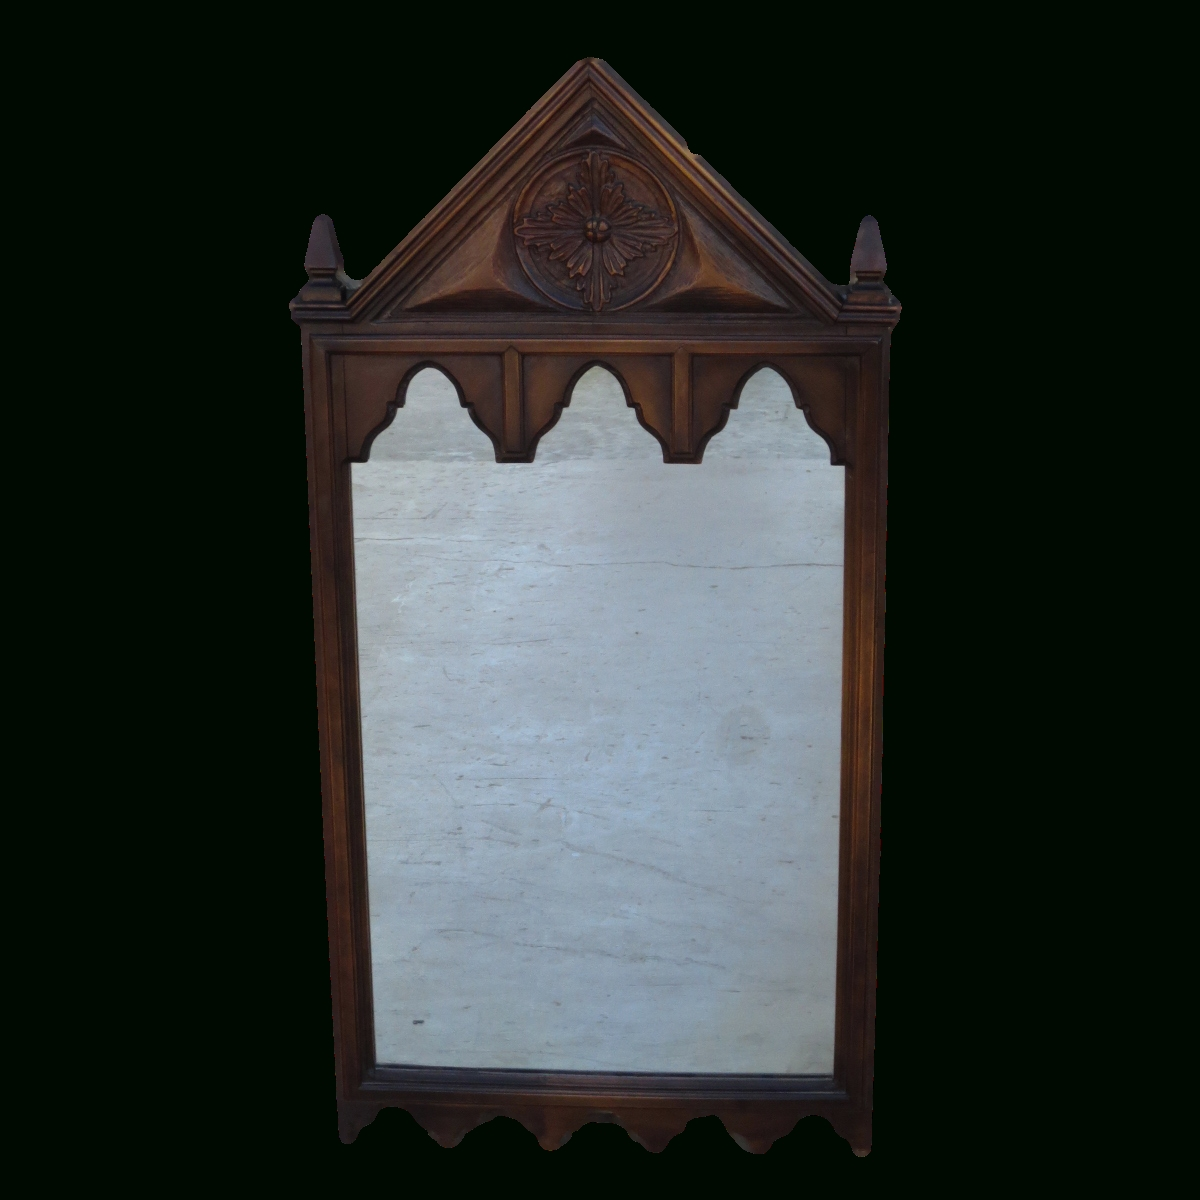 Antique Mirrors And Antique Fruniture From Antique Furniture Mart with Gothic Wall Mirrors (Image 4 of 25)